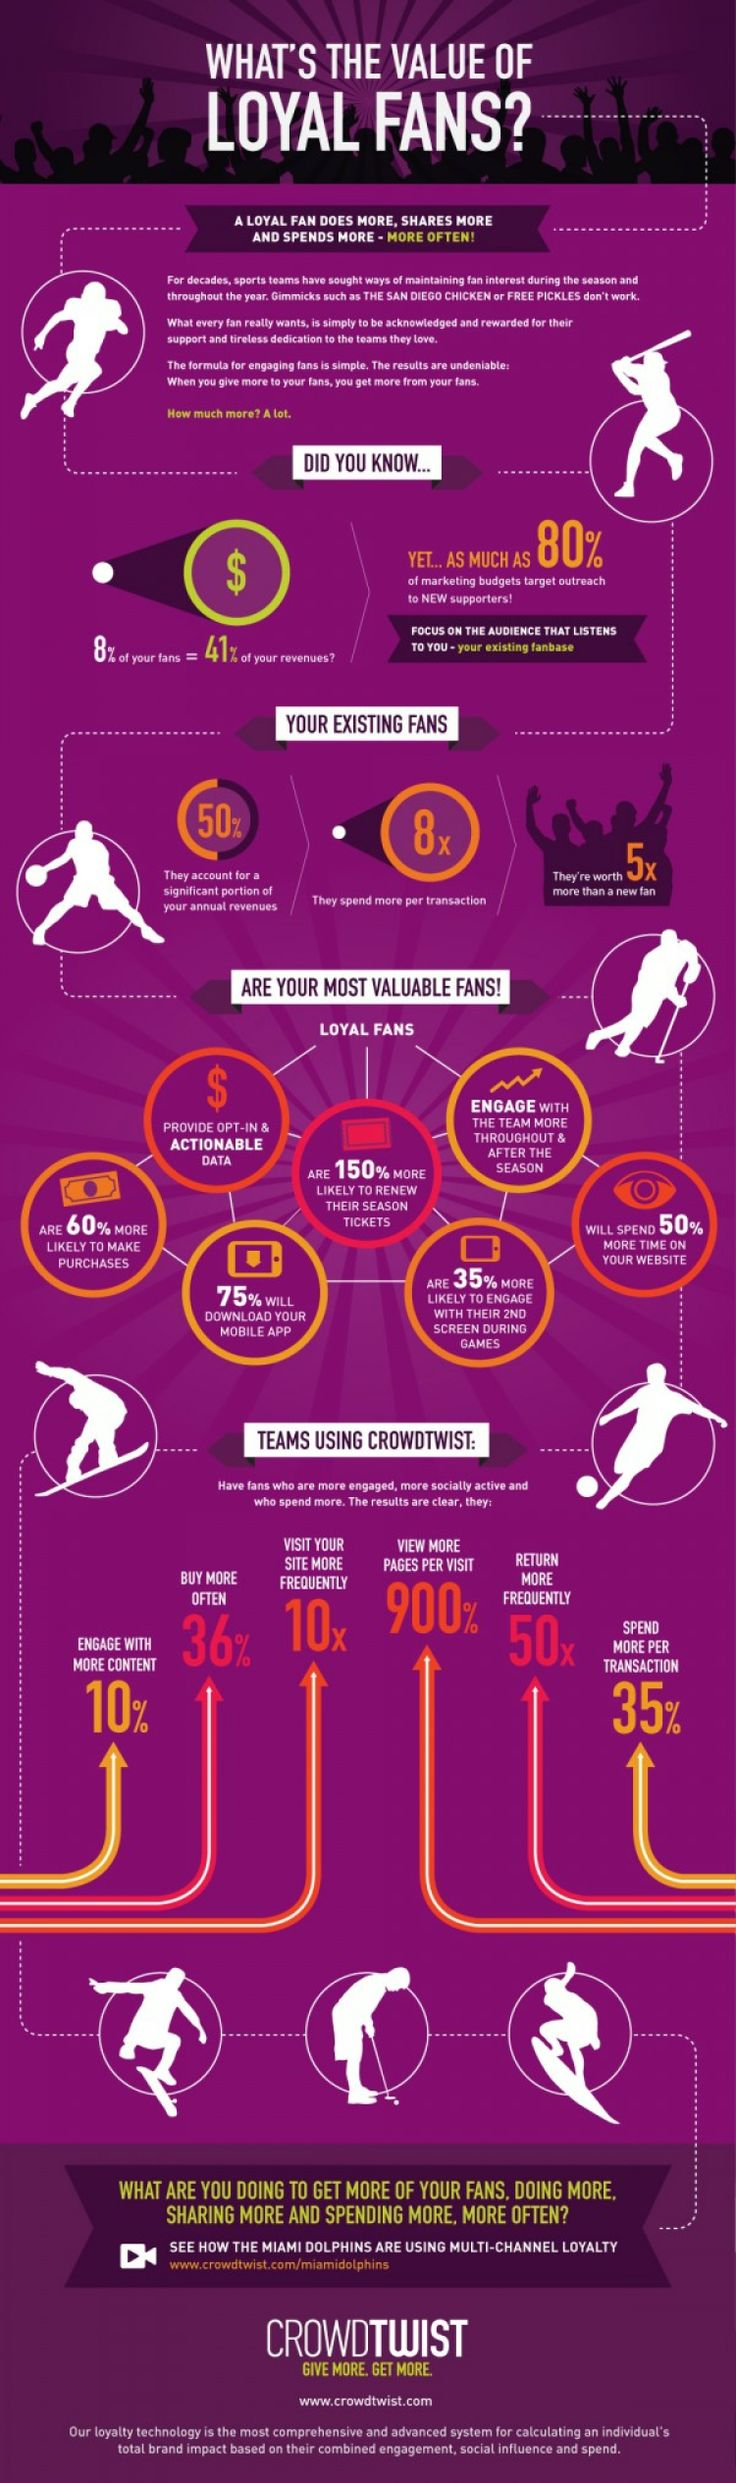 What's the Value of Loyal Fans? Social media infographic